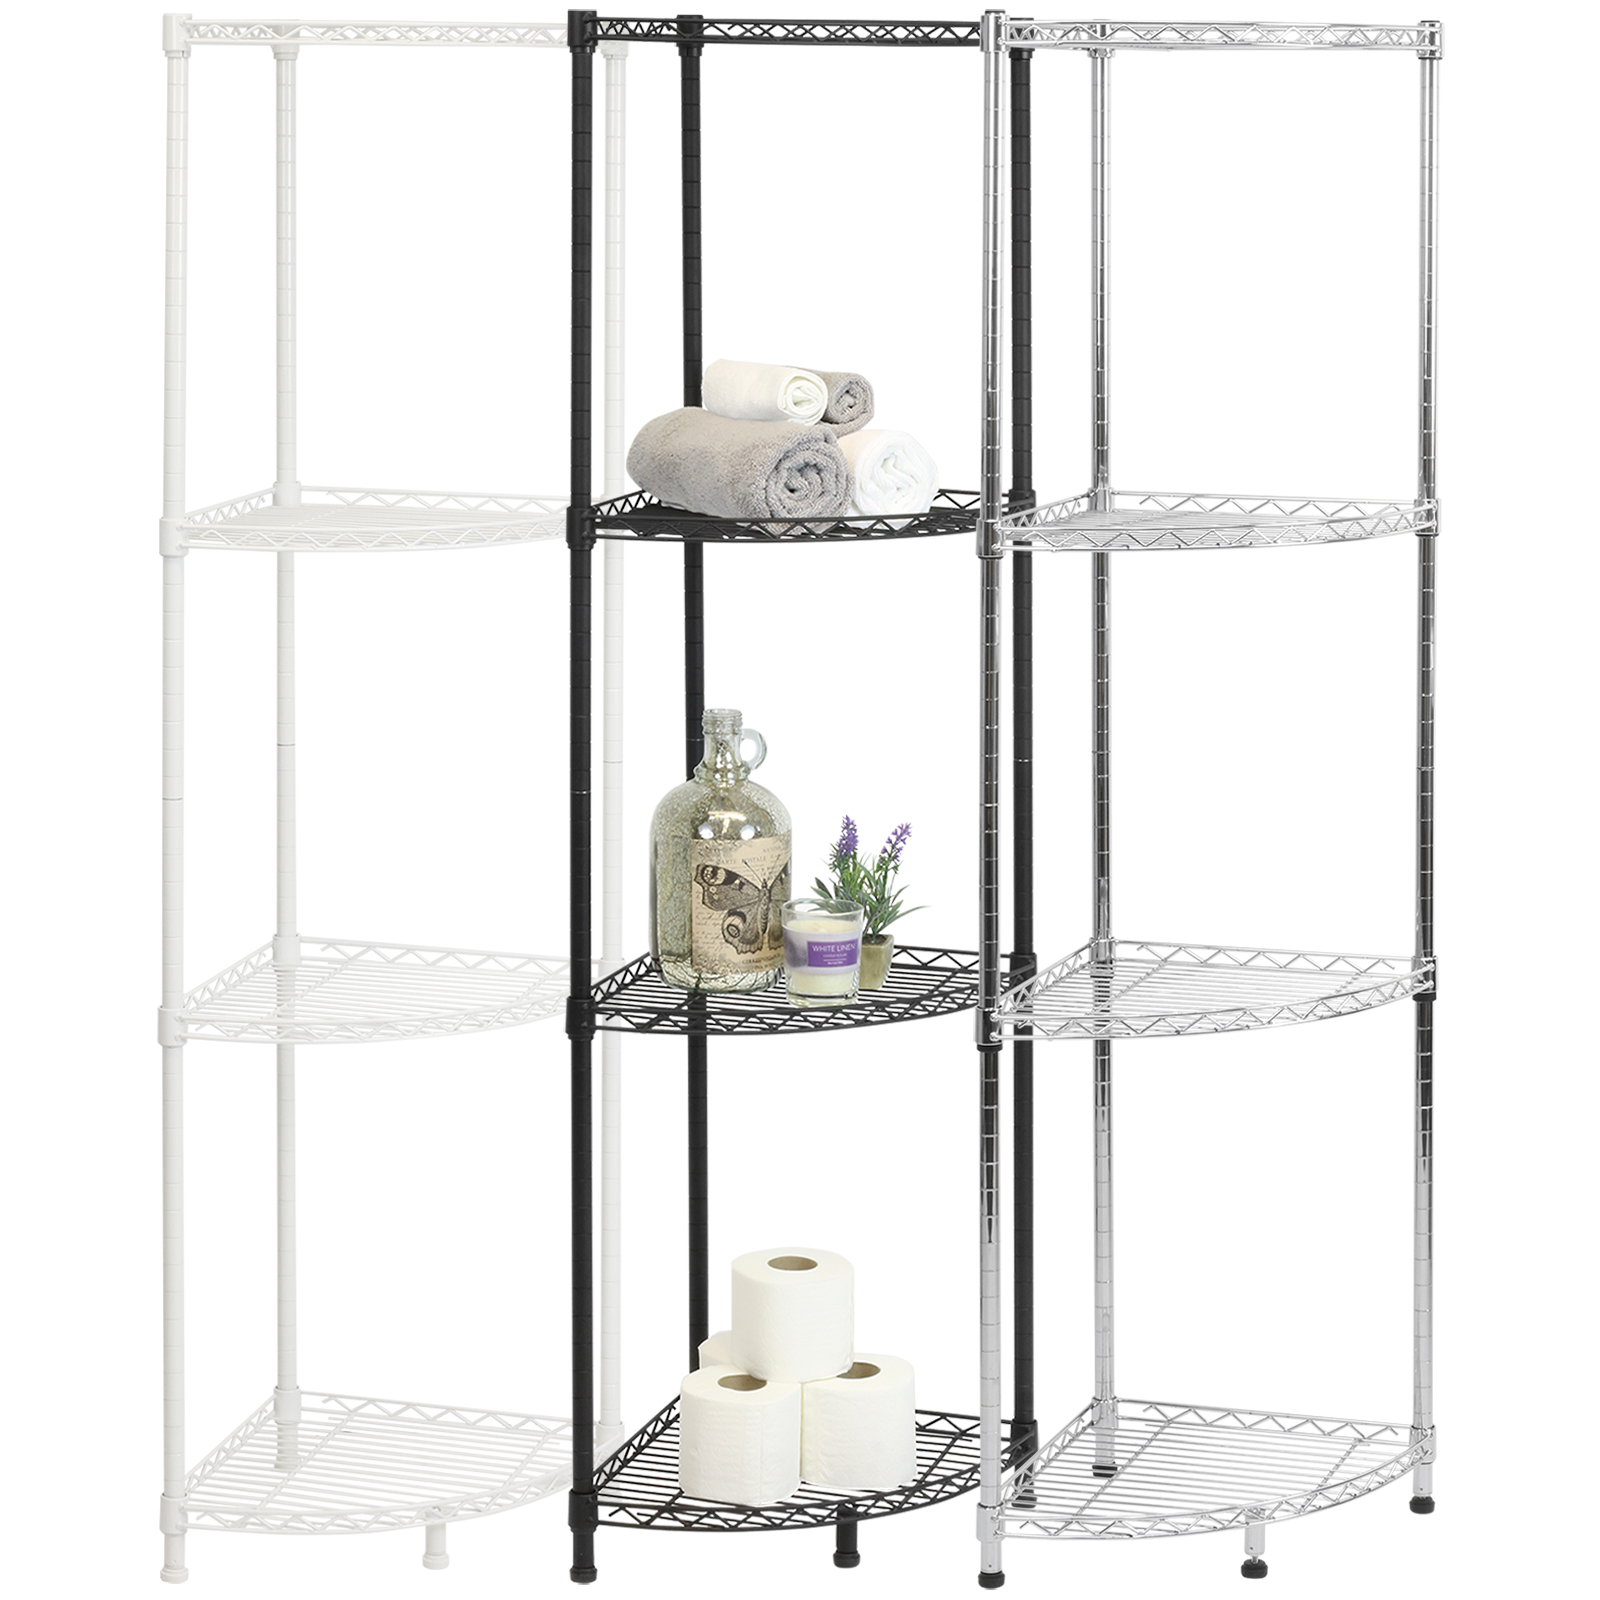 Details About Hartleys Metal Wire Corner Shelving Unit Storage Kitchen Pantry Shelves Racks